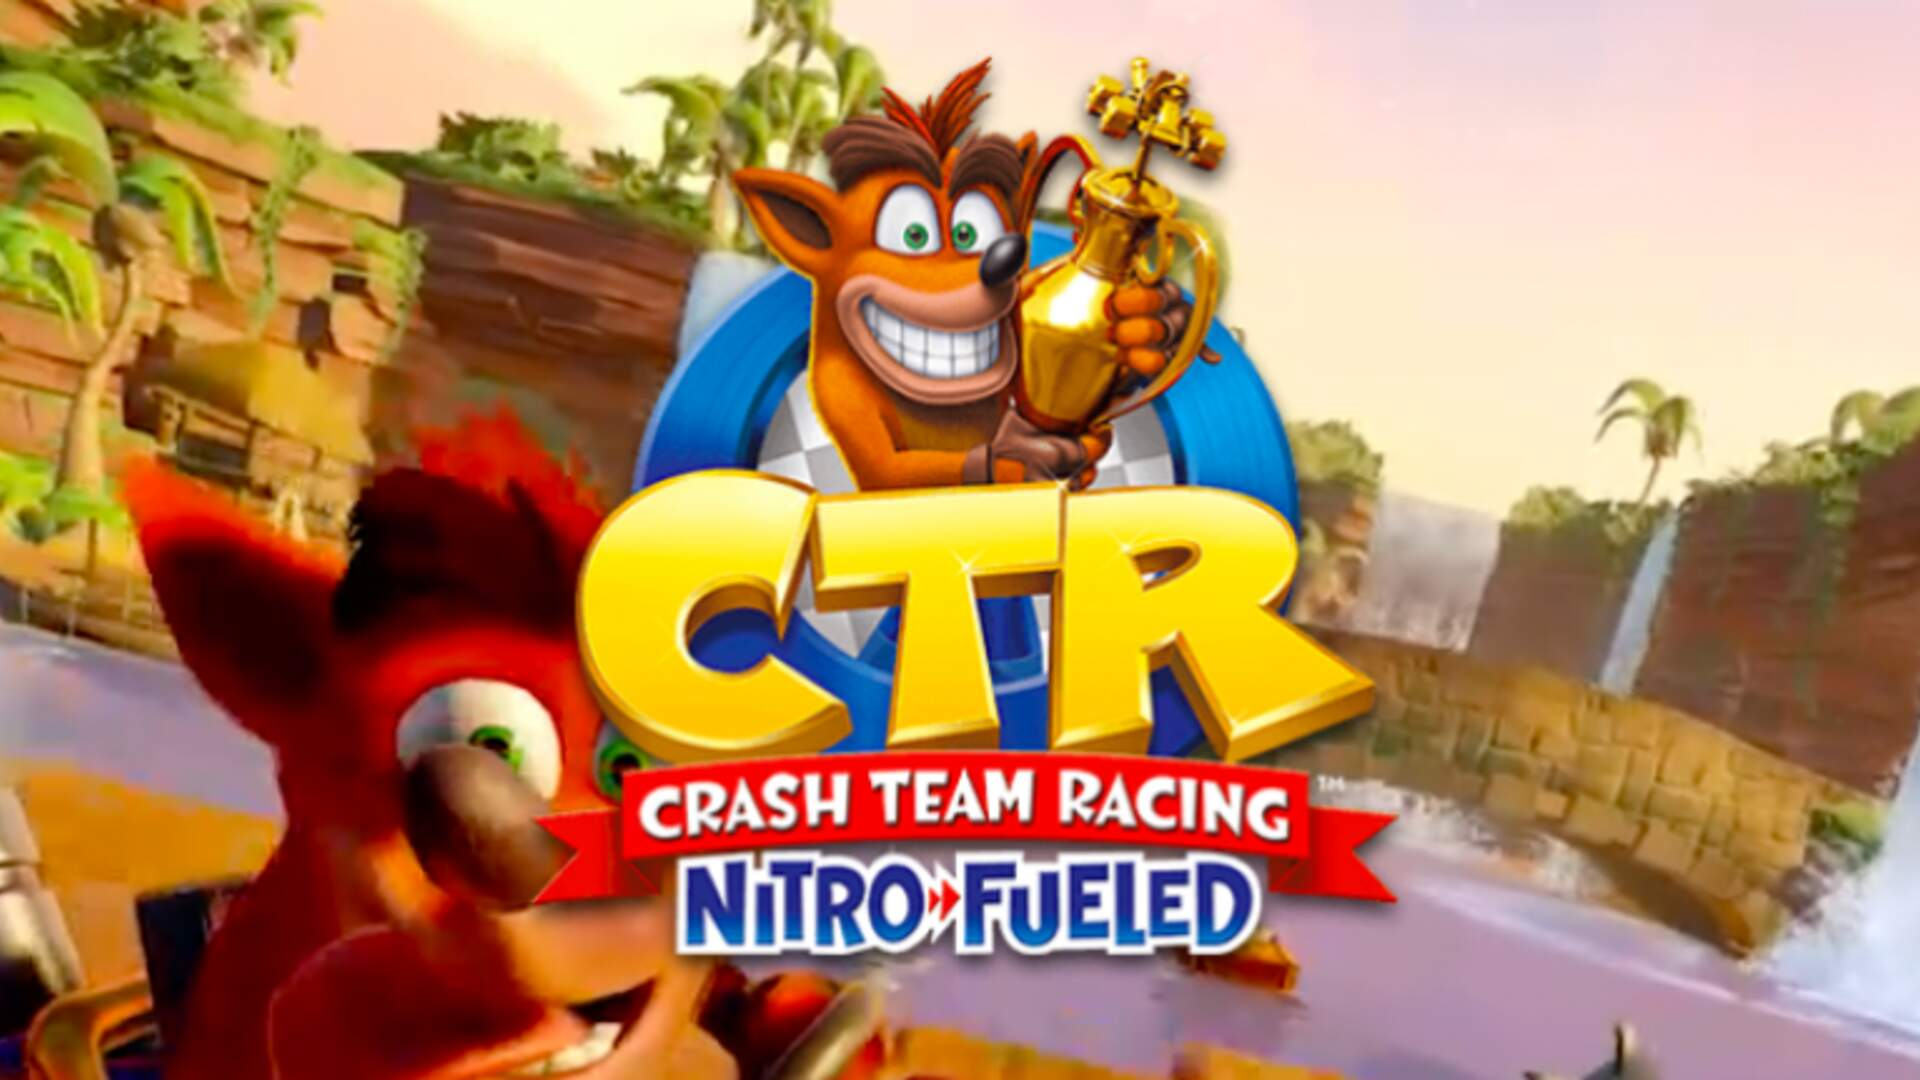 Crash Team Racing Remastered Release Date, Trailer, Characters - Everything We Know